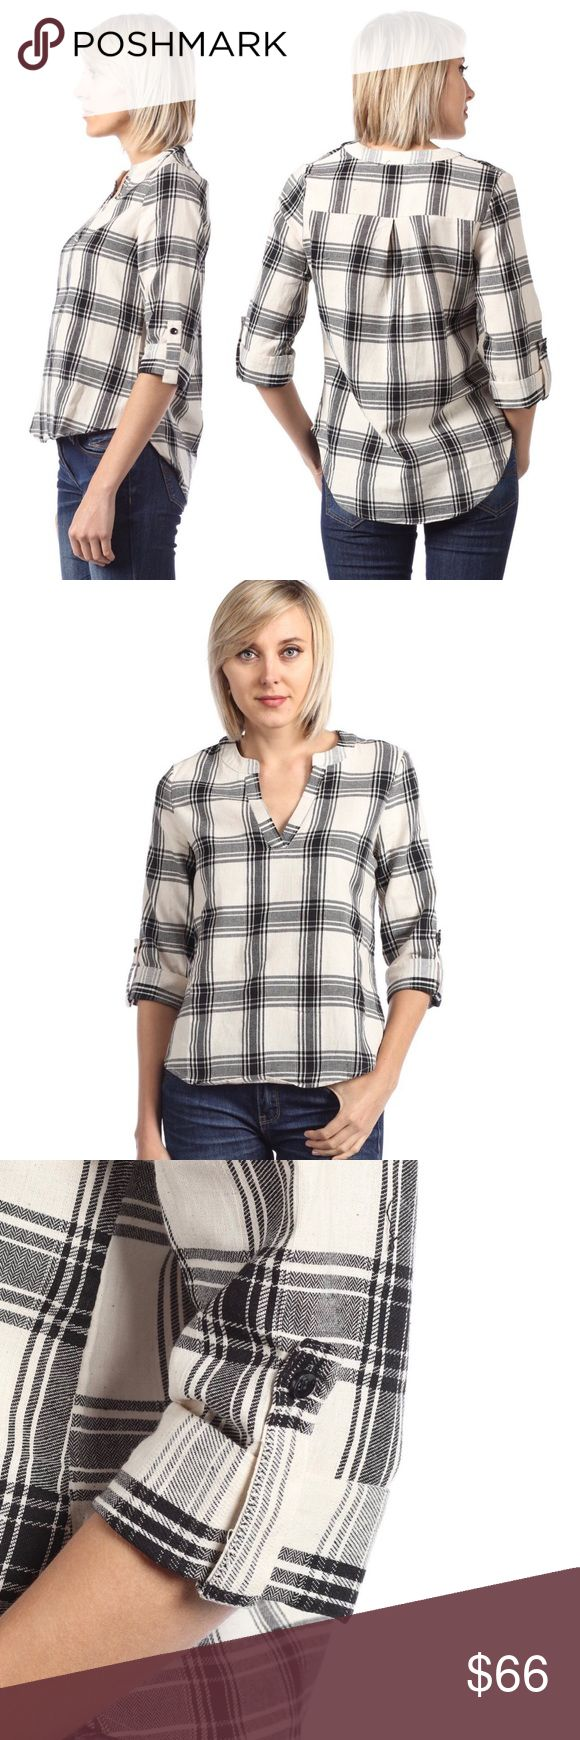 Cream and Black Rolled Sleeve Split Neck Check Top A cute, classic, top with a graphic cream and black plaid check pattern on a soft, wear anywhere blouse. Lightweight with versatile long sleeves you can roll and button up, makes this blouse perfect for cool weather.   Size Small  ❌ Sorry, no trades. fairlygirly Tops Tees - Long Sleeve